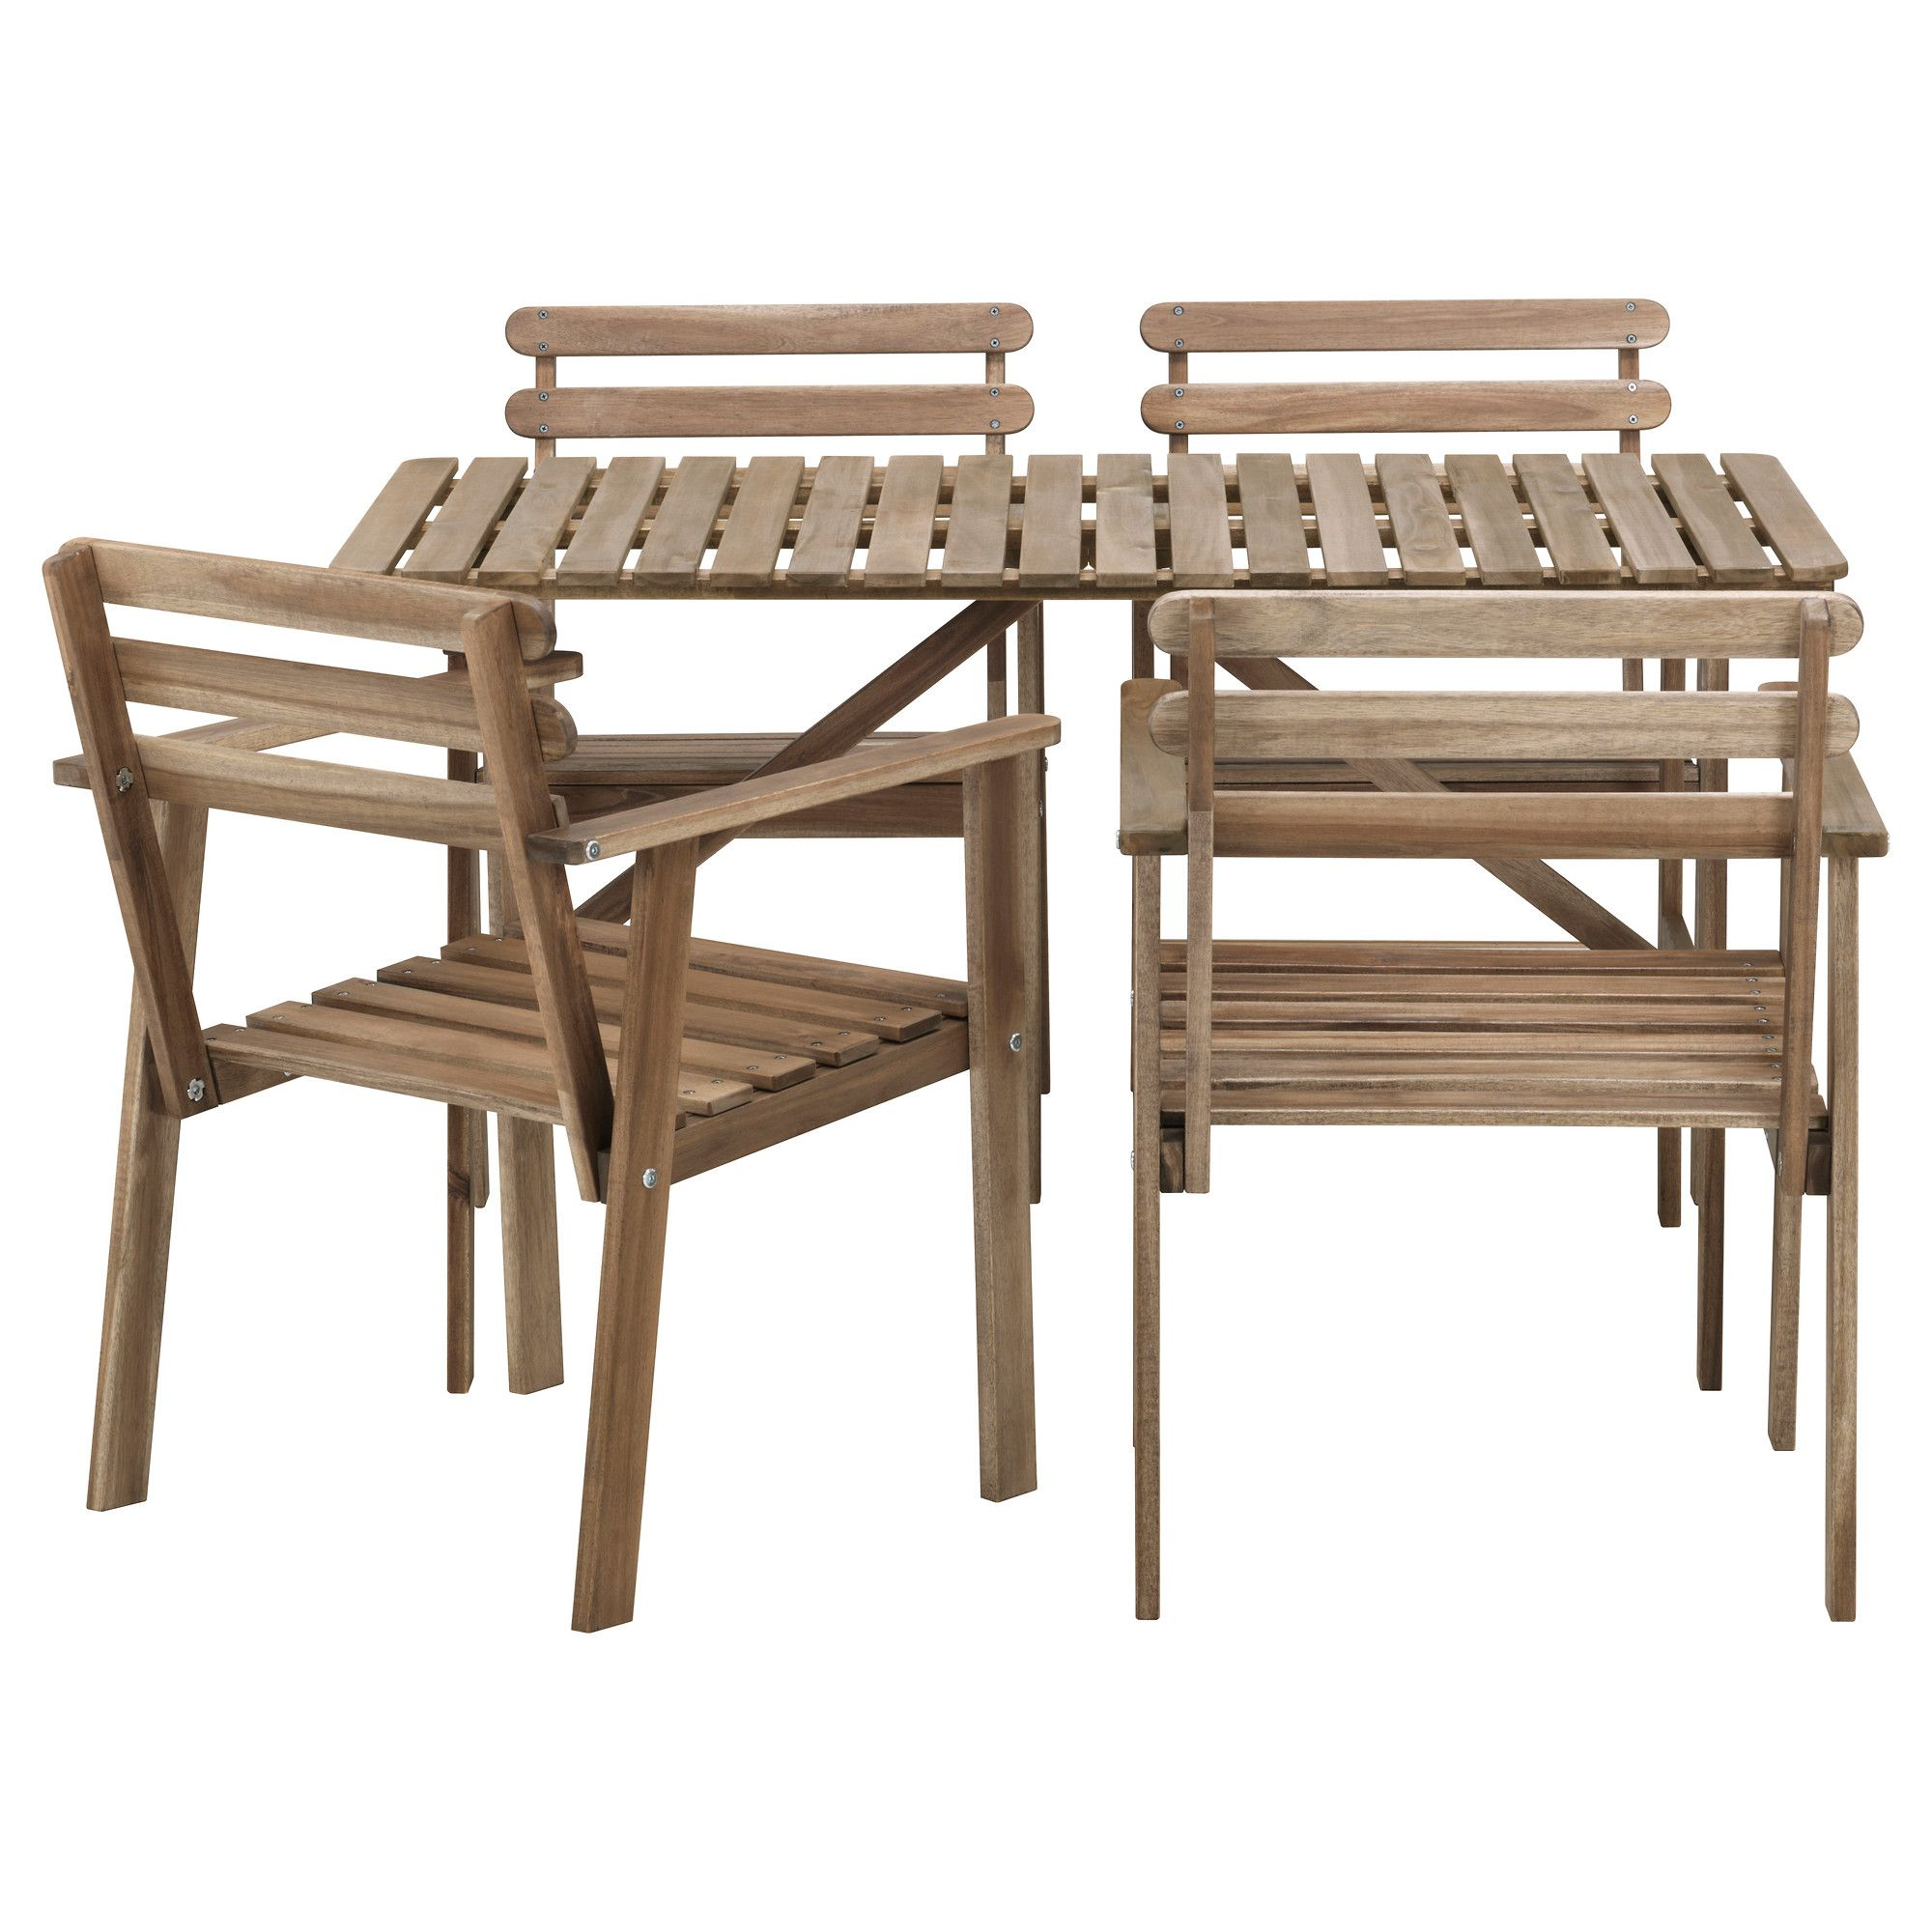 Outdoor Dining Furniture Ikea Outdoor dining sets IKEA PPLAR